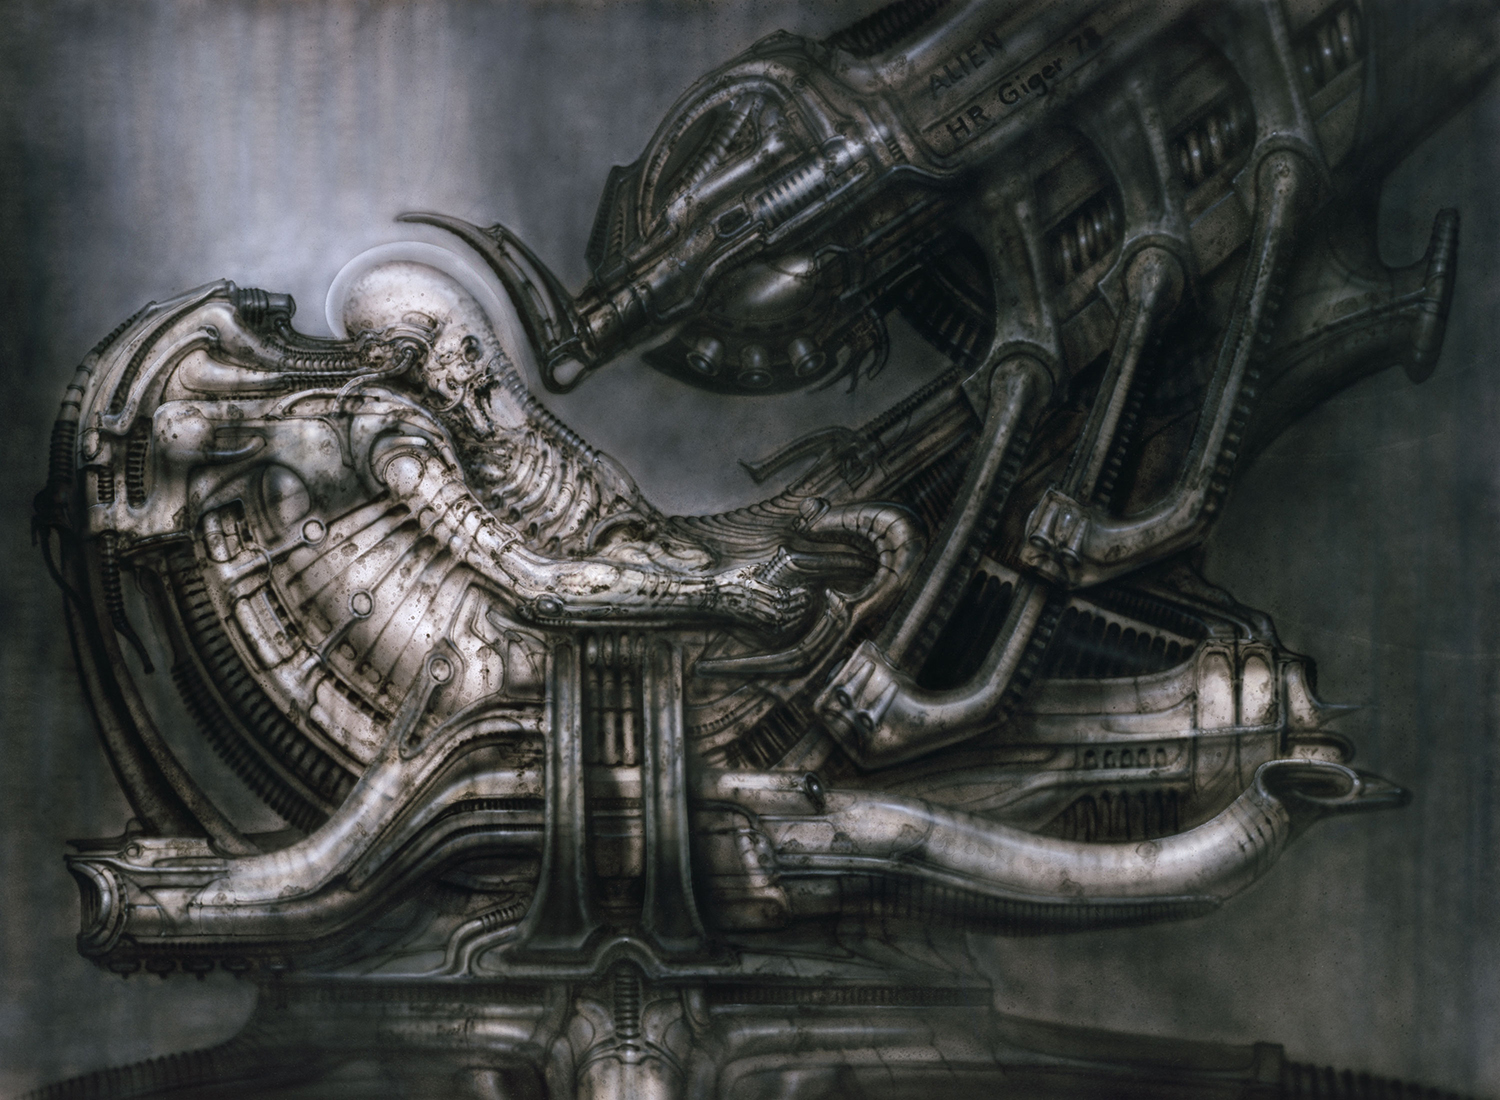 hr giger art, inspired the movie alien